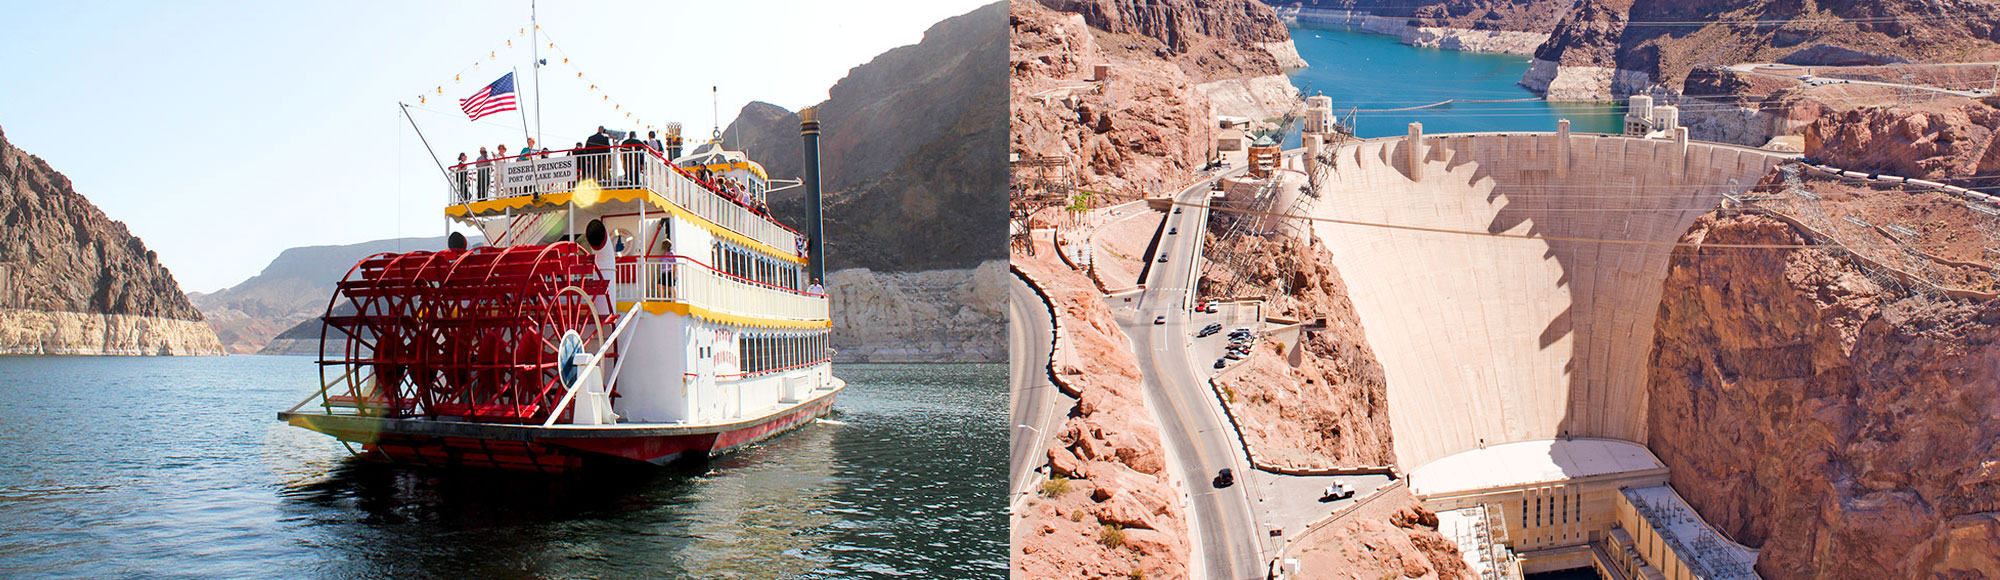 Lake Mead Cruise and Hoover Dam Discovery | Vegas com